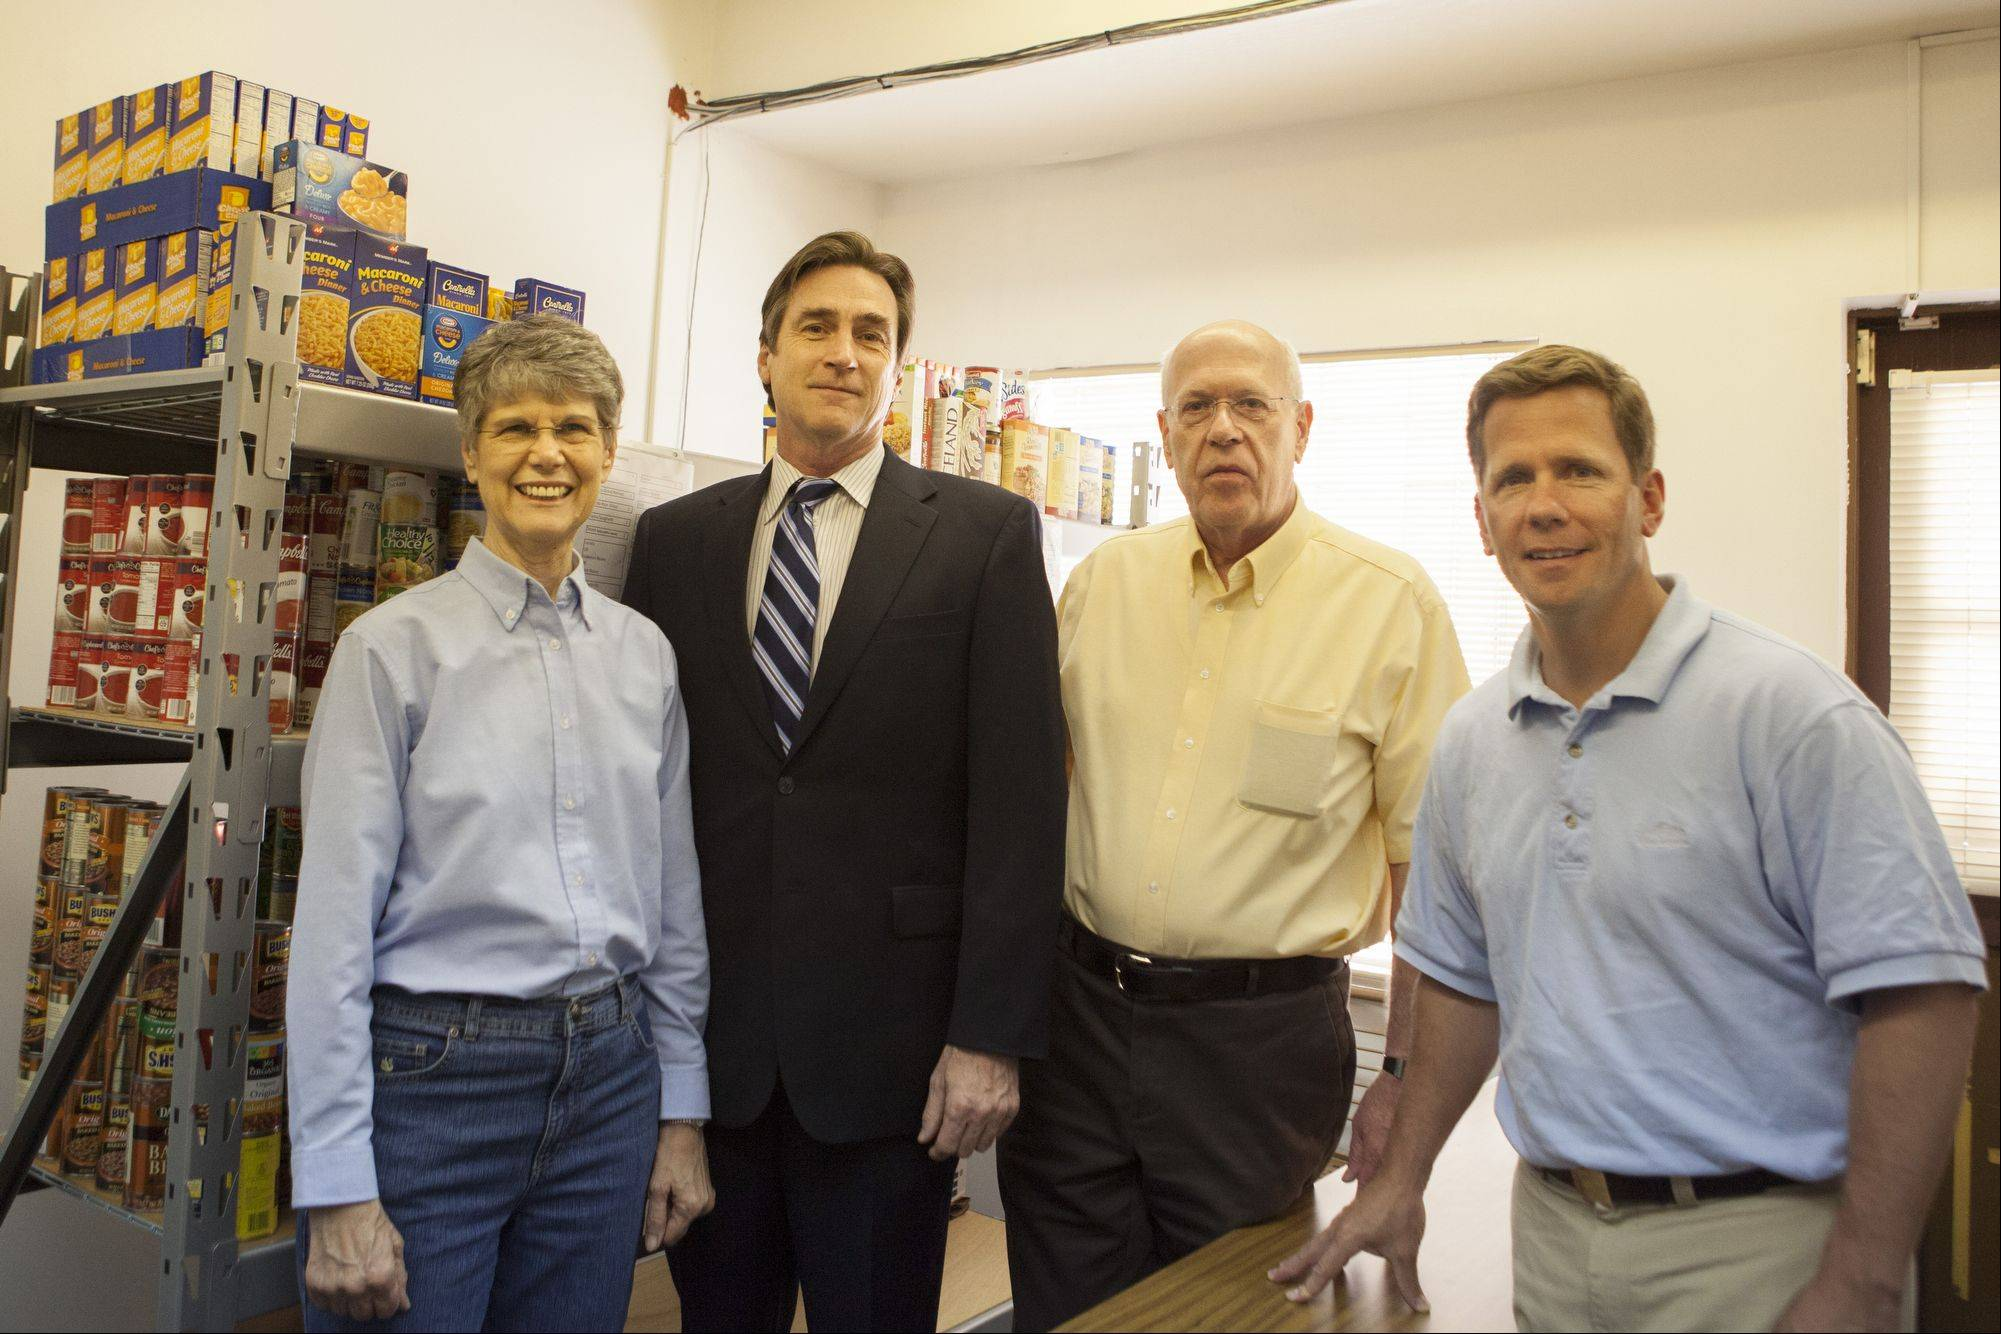 Need continues to rise at Wheeling food pantry